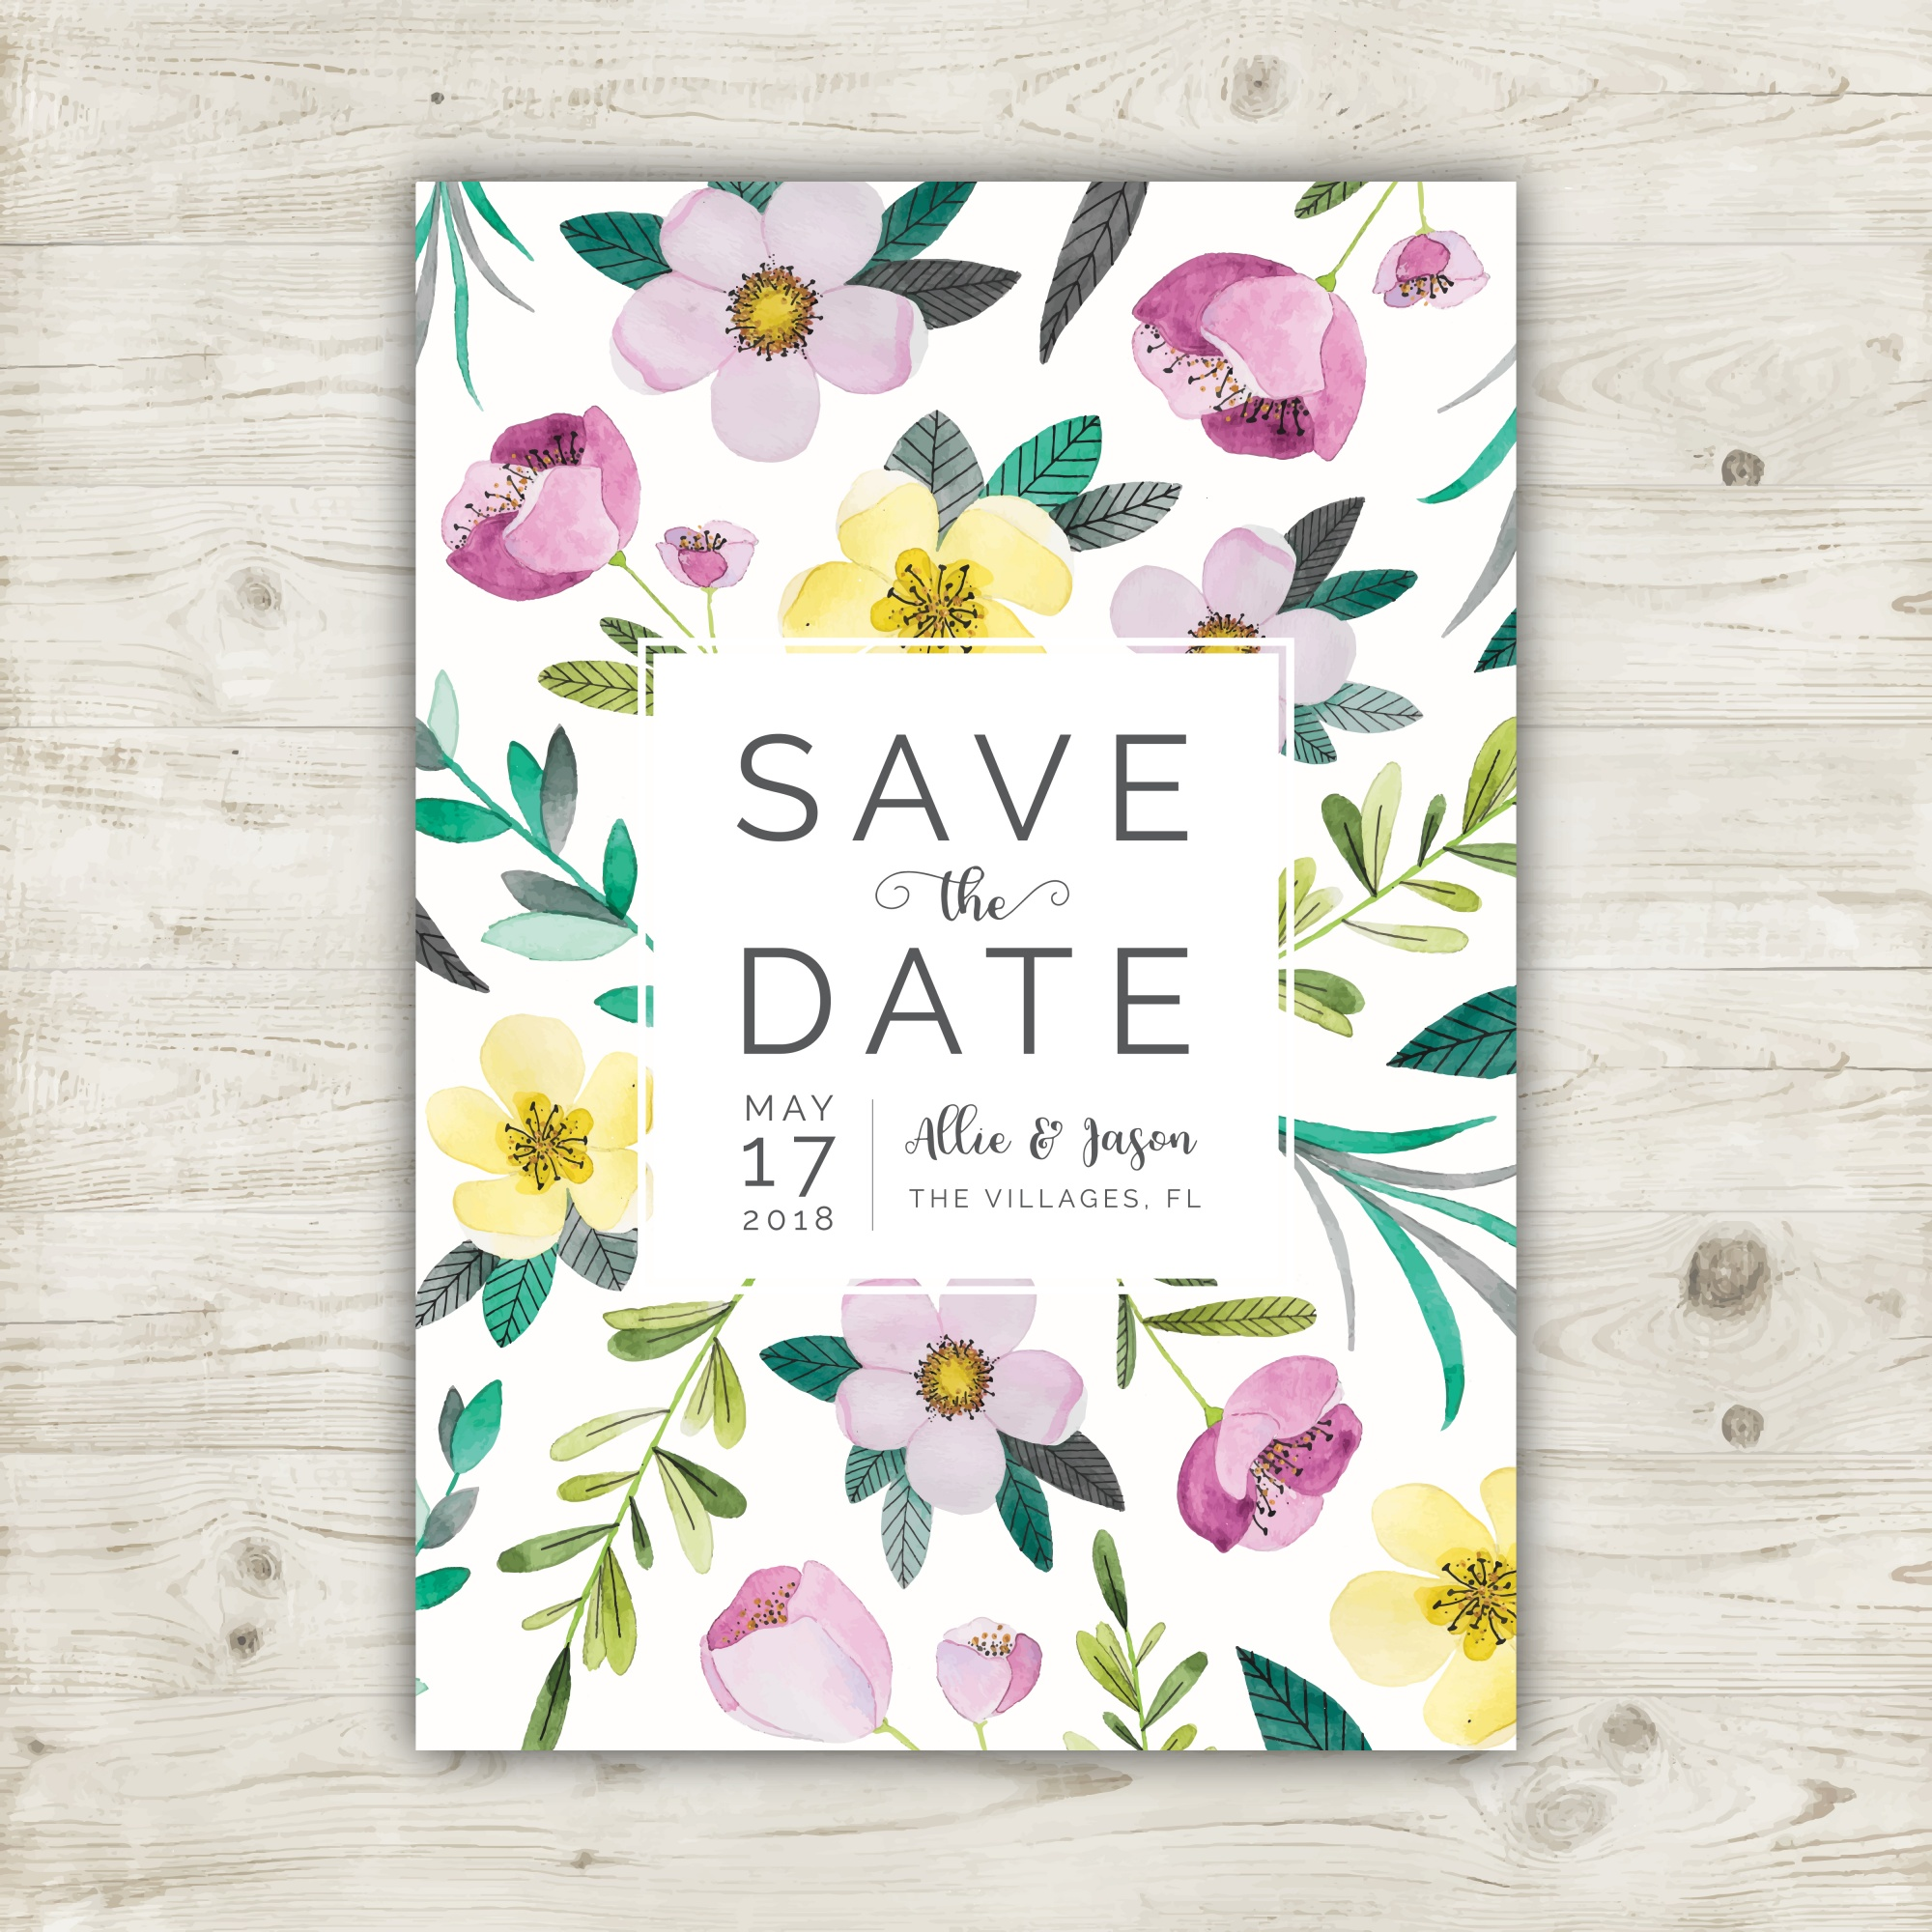 Floral watercolor save the date card